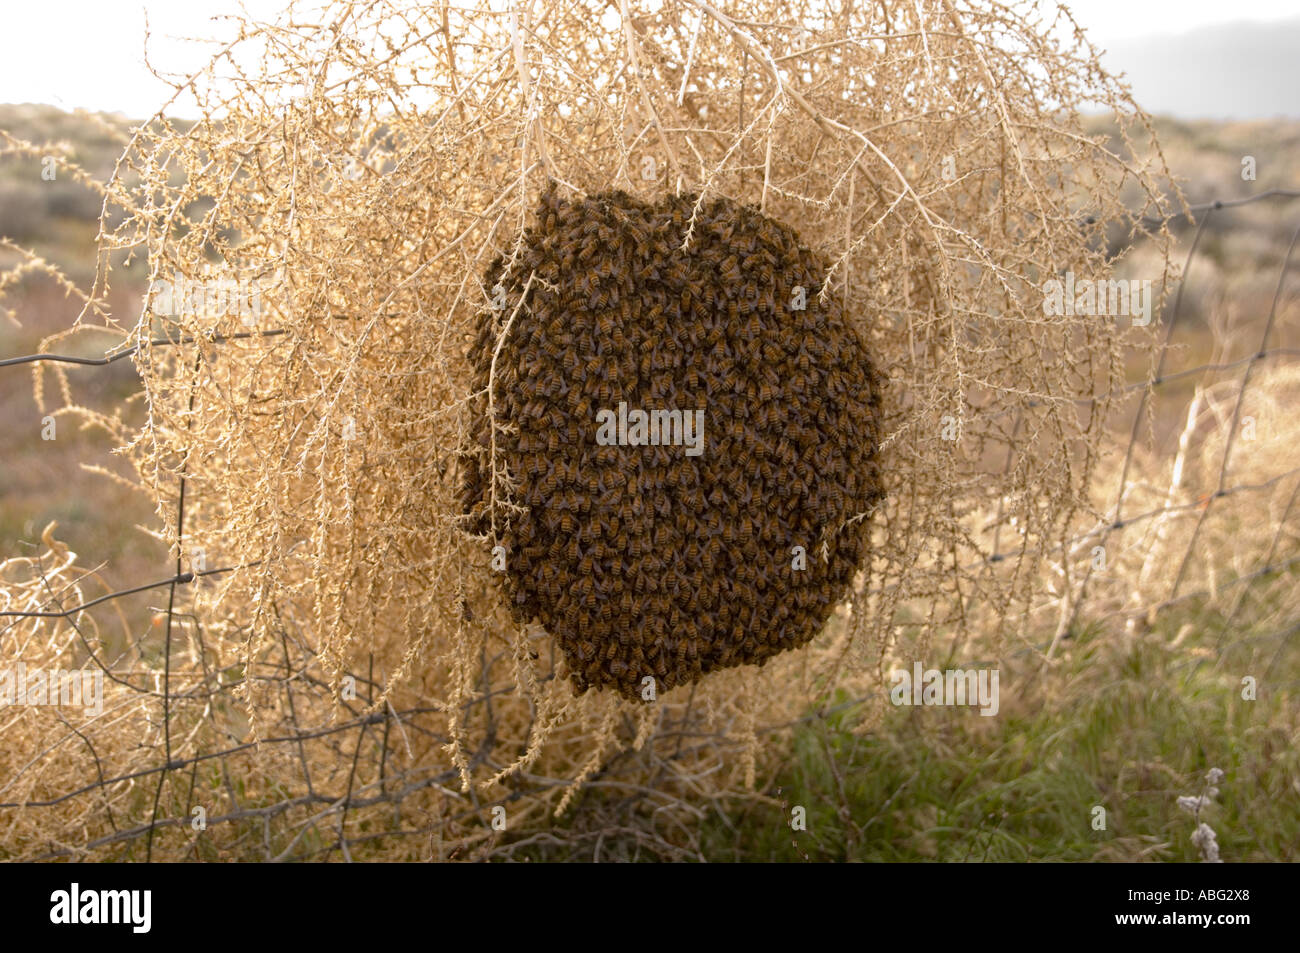 Swarm of bees in a tumble weed on a fence - Stock Image